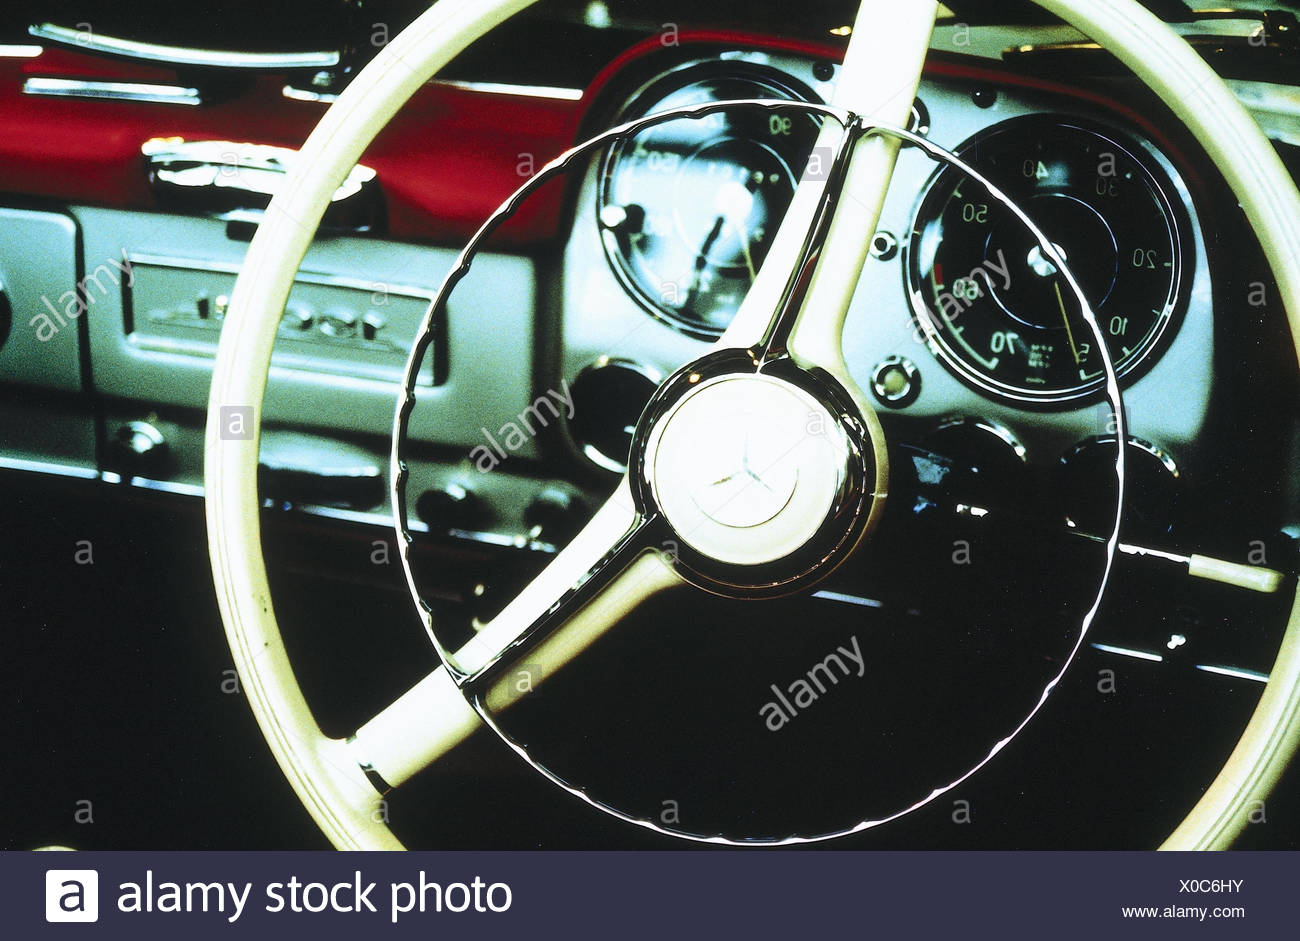 Old-timers, Mercedes, detail, tax, dash board, passenger car, vehicle, automobile, armatures, cockpit, steering, steering system, navigation, navigate, tax, tax, nostalgia, nostalgically - Stock Image